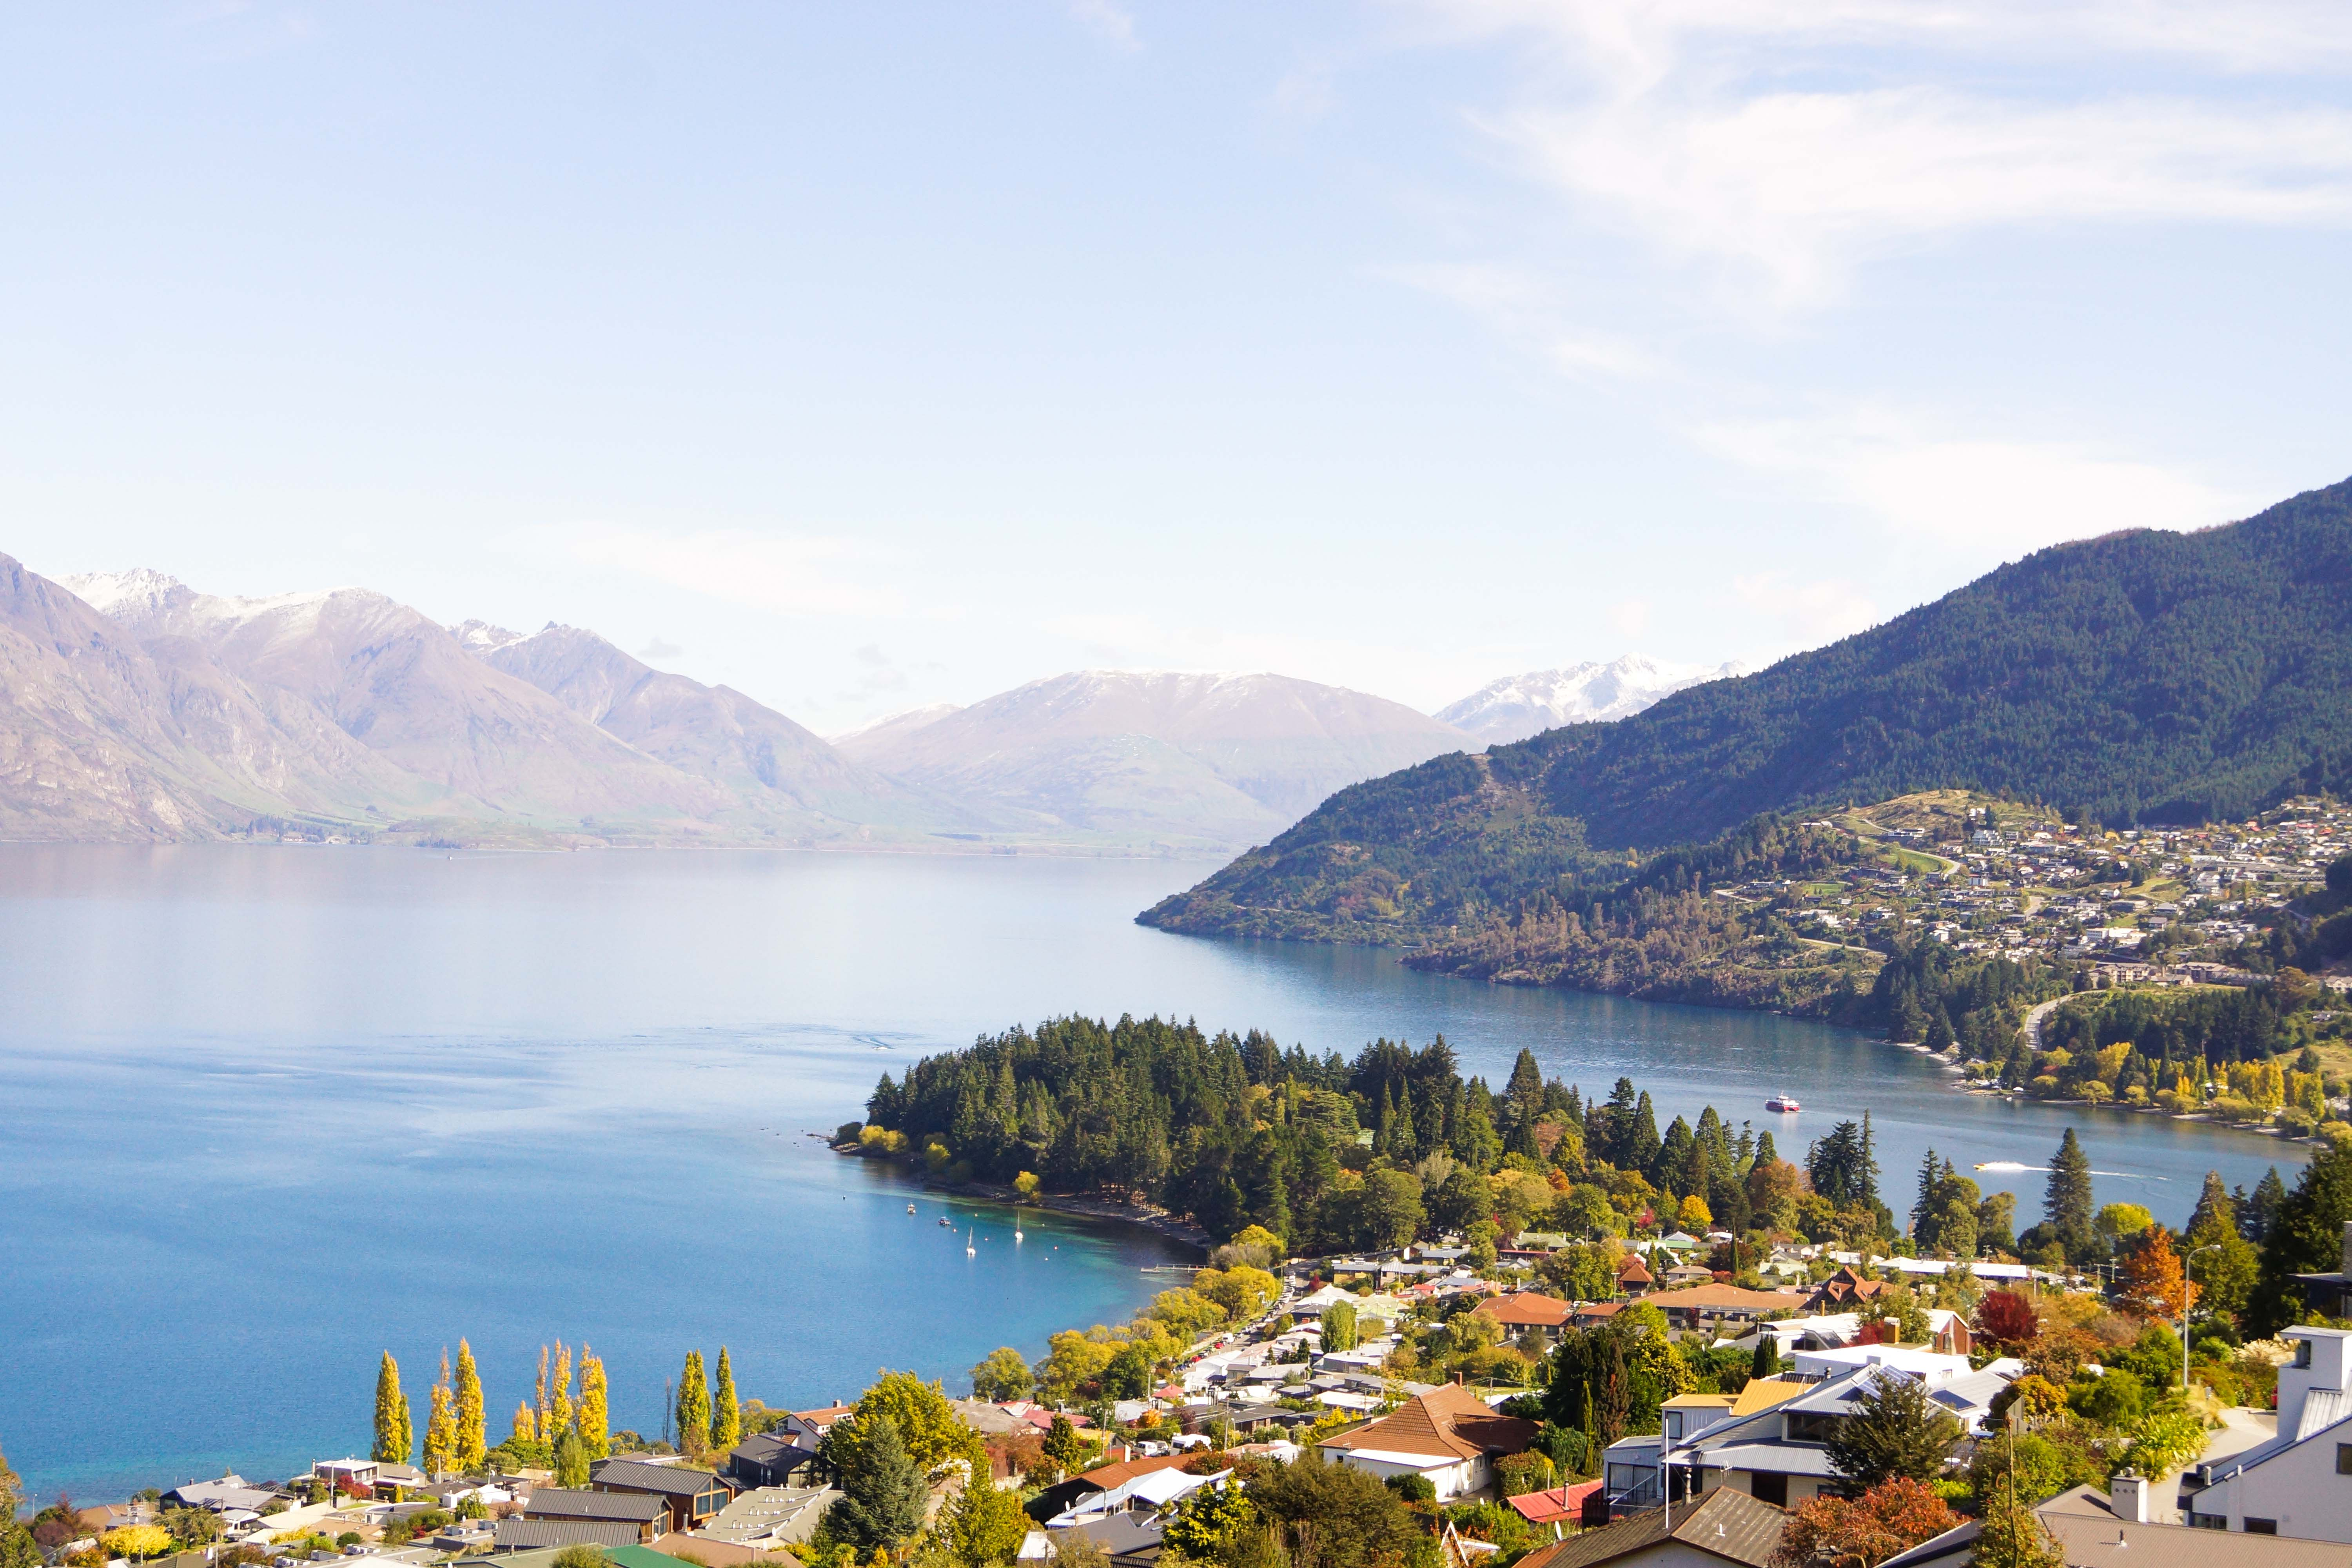 KJet Lake Wakatipu in Queenstown